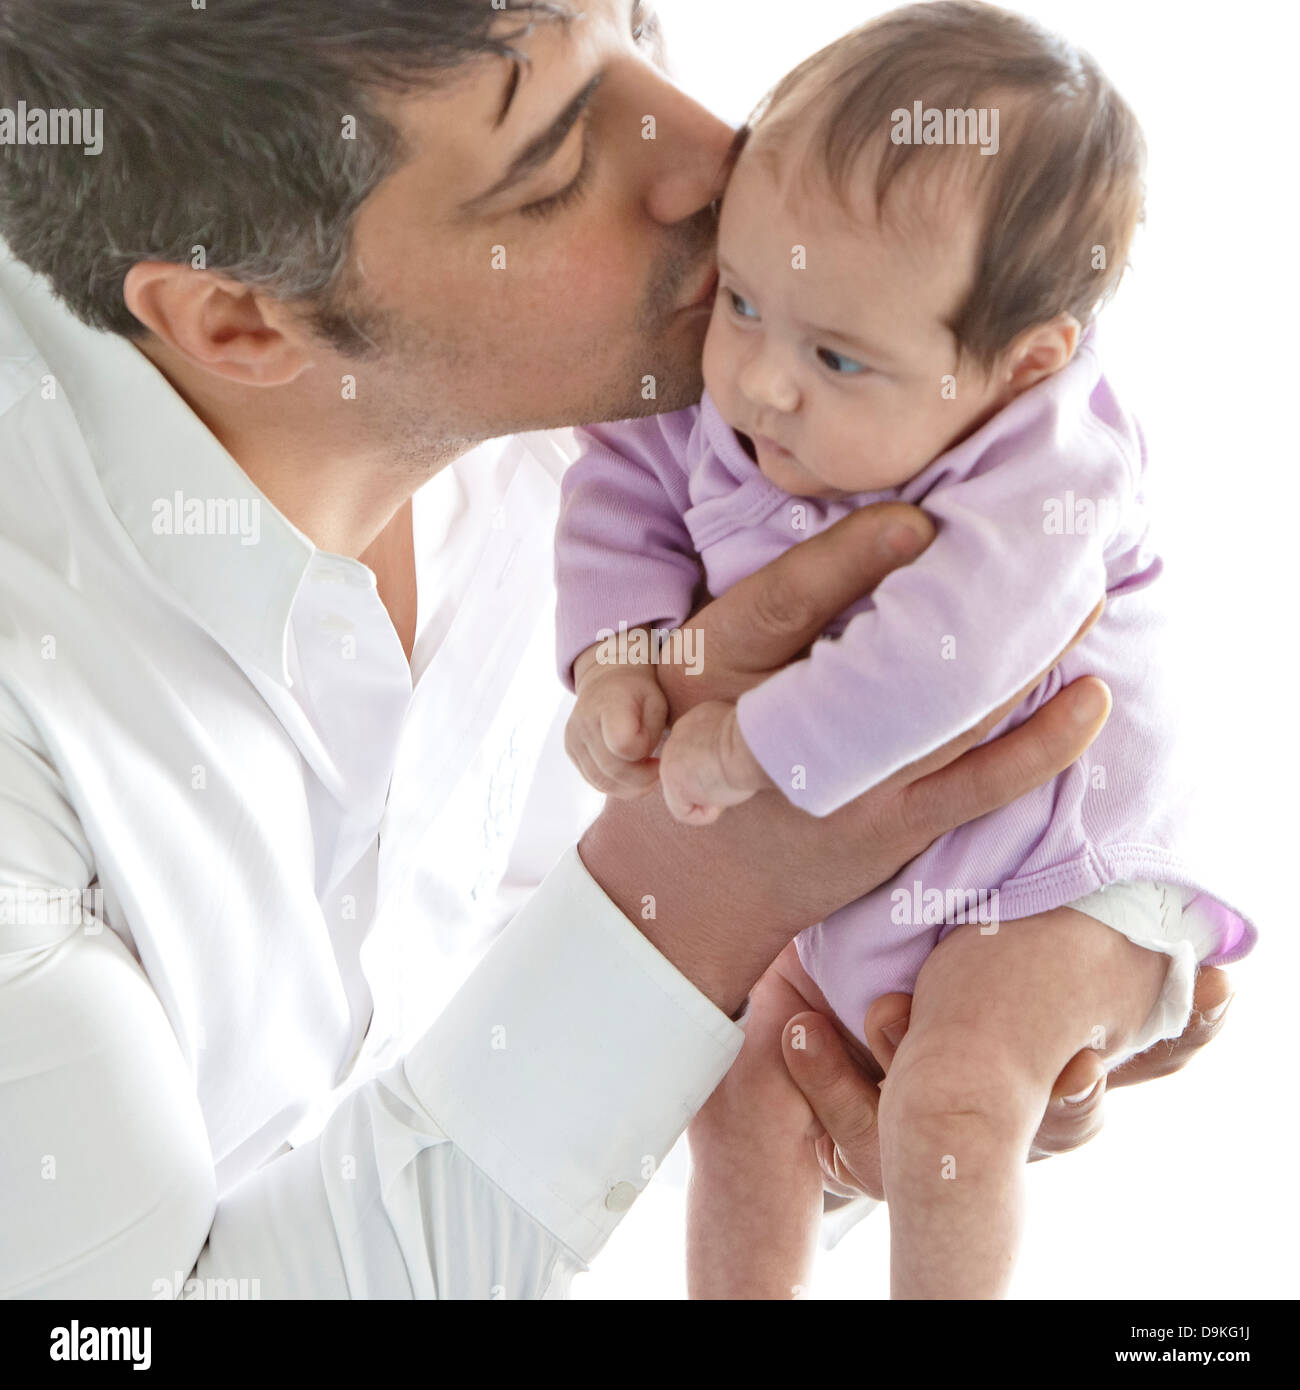 father and newborn baby girl - Stock Image